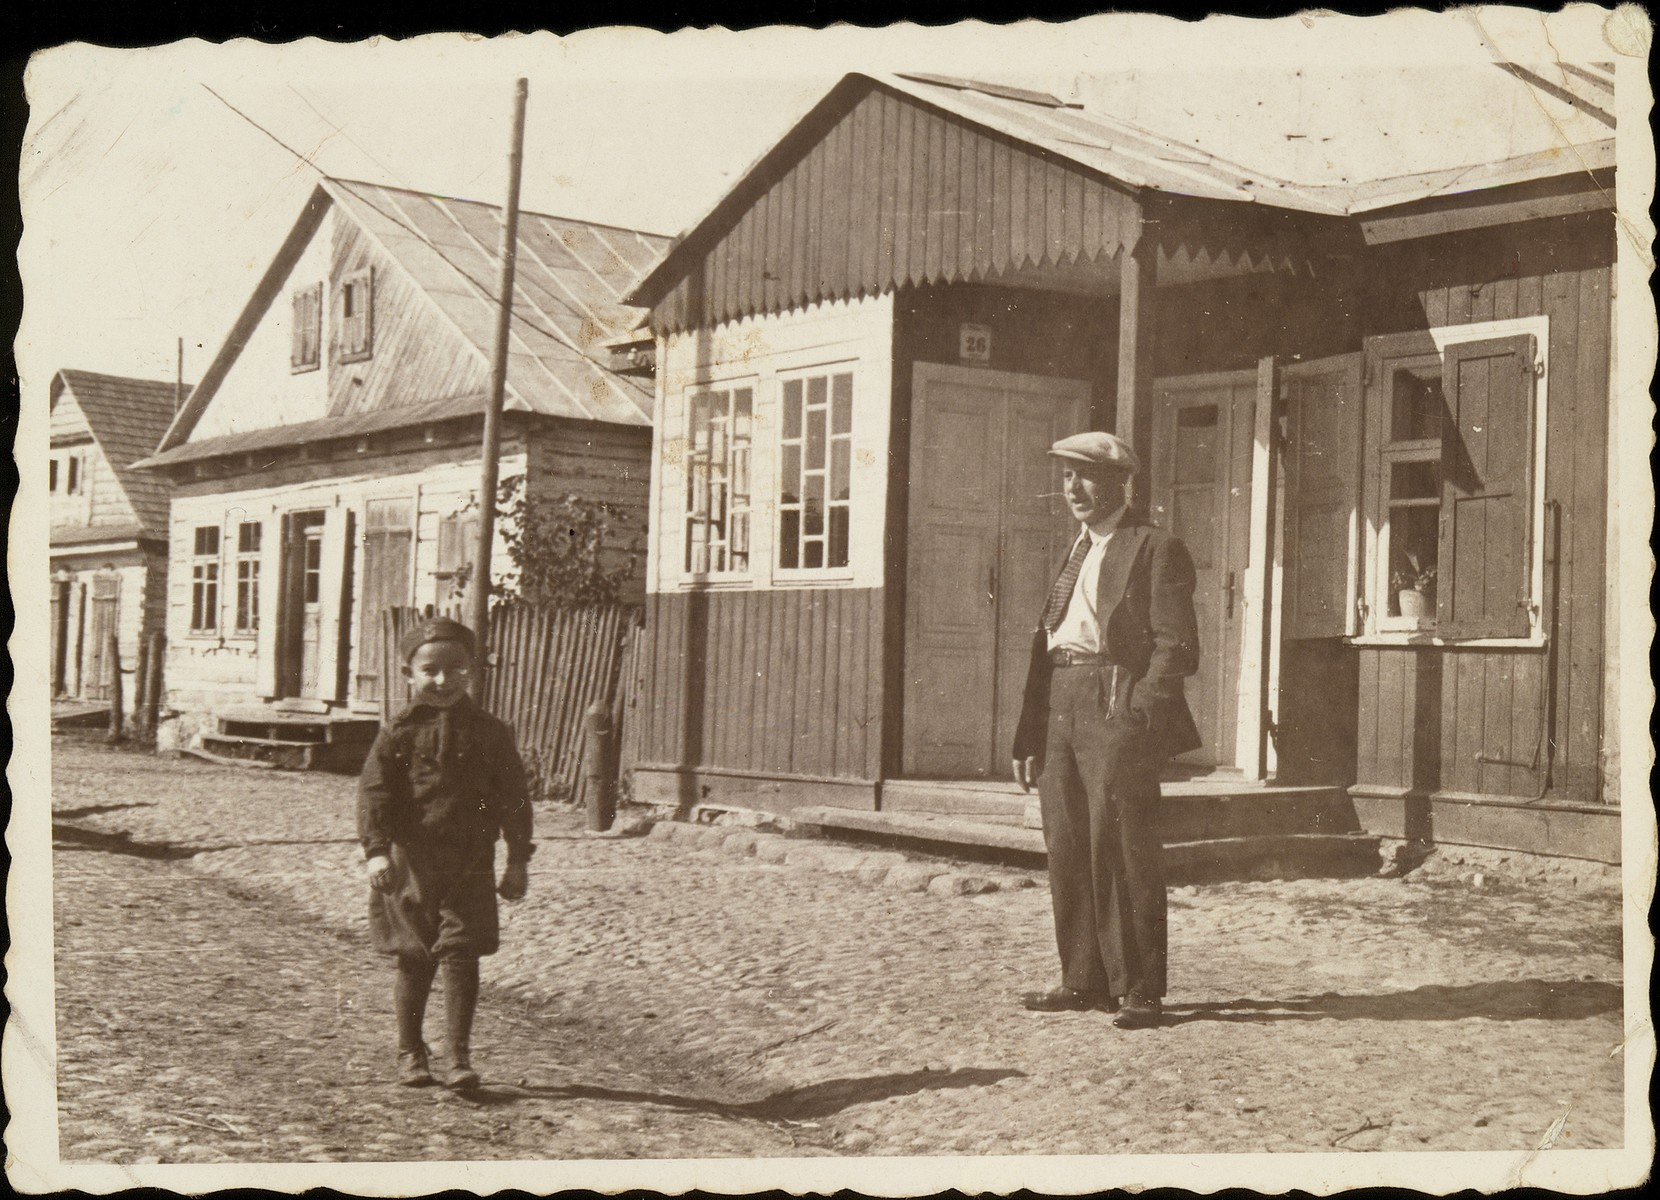 A father watches his son walk to school down a street of the shtetl.